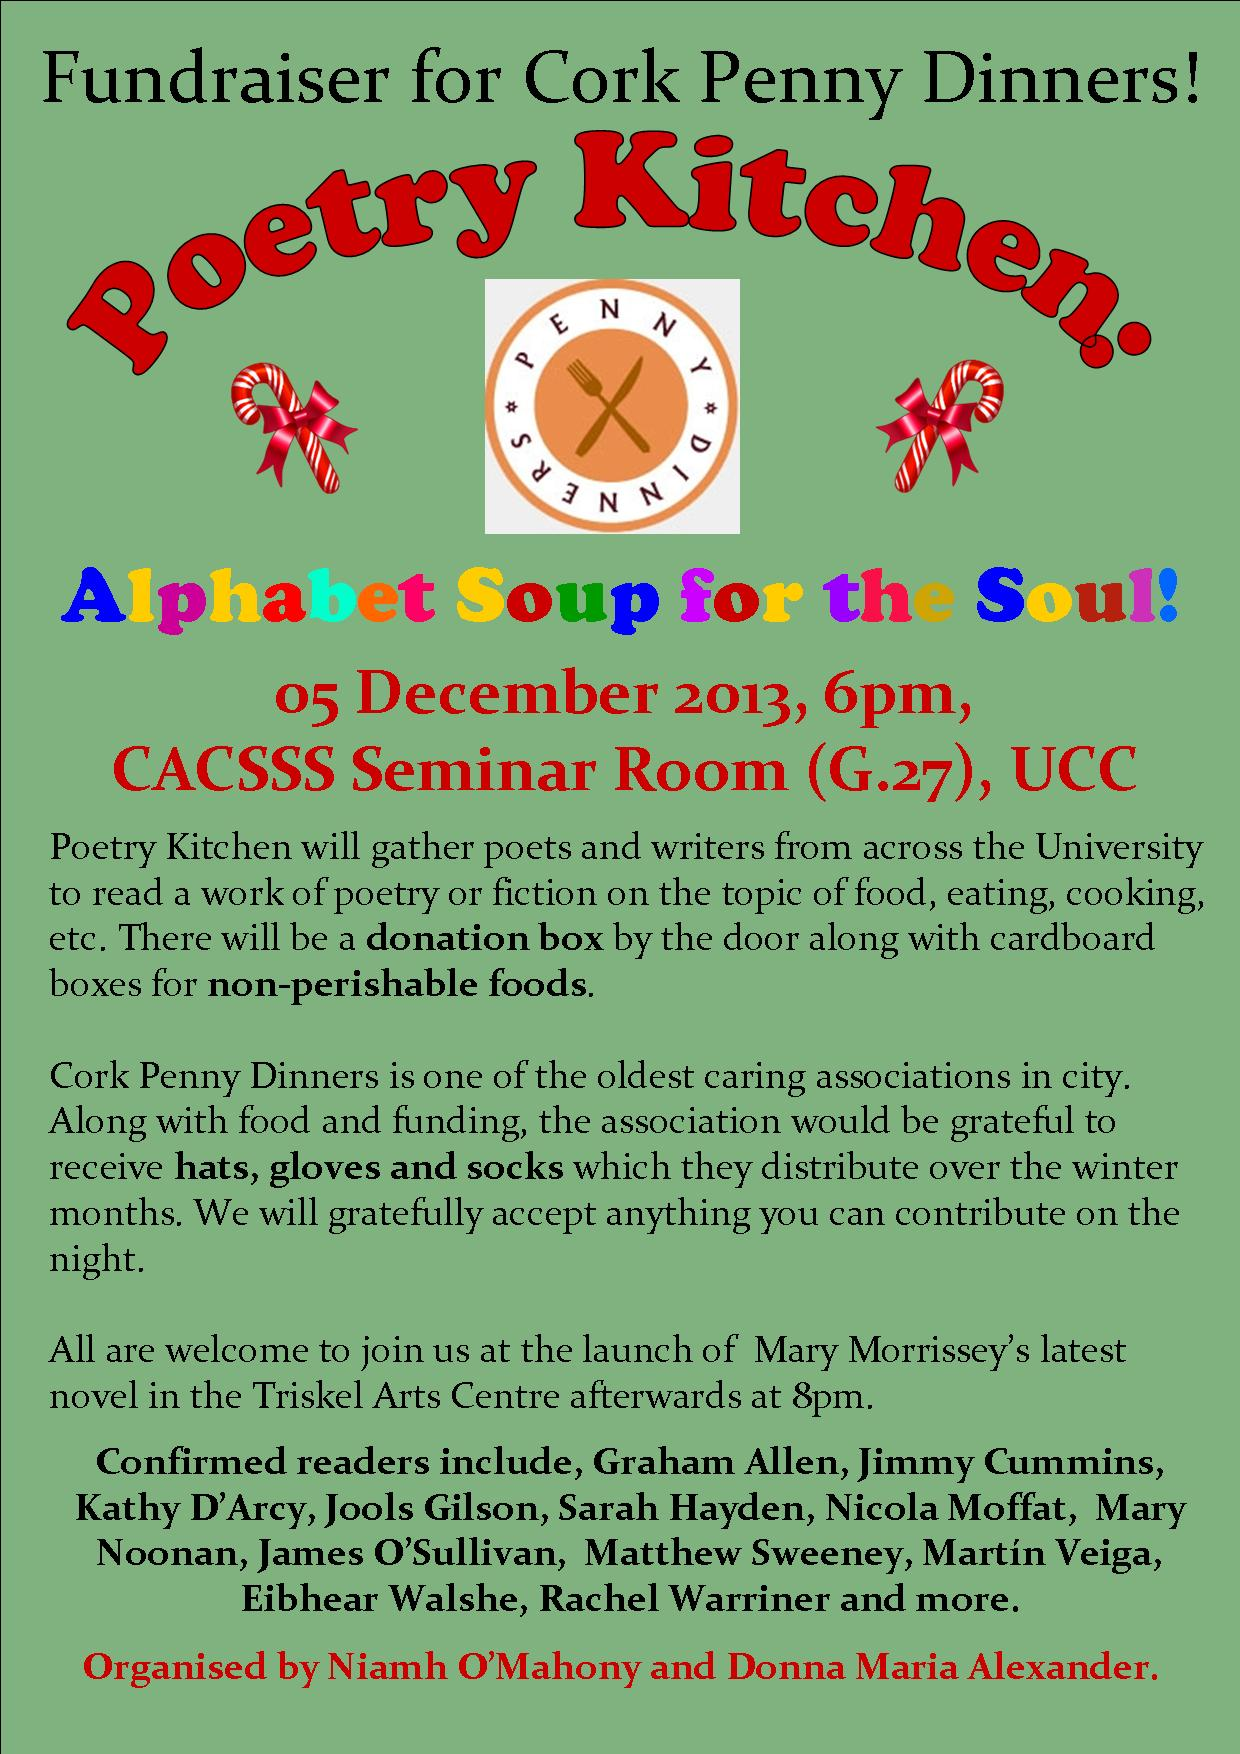 Poetry Kitchen - fundraiser for Cork Penny Dinners